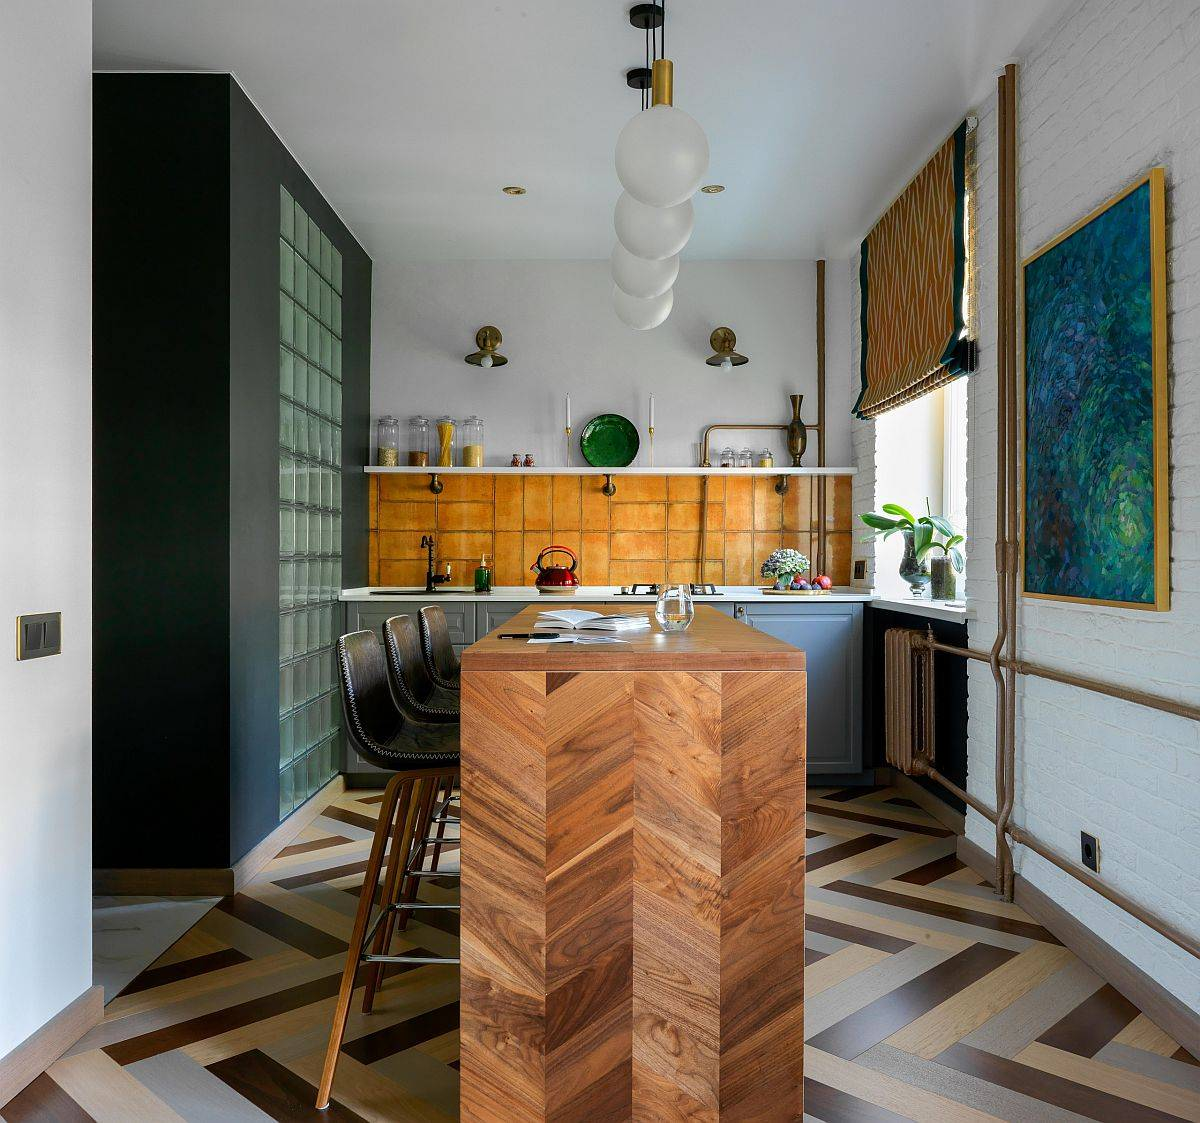 Cusom-wooden-kitchen-counter-with-chevron-pattern-and-floor-tiles-that-uher-in-herringbone-design-93601